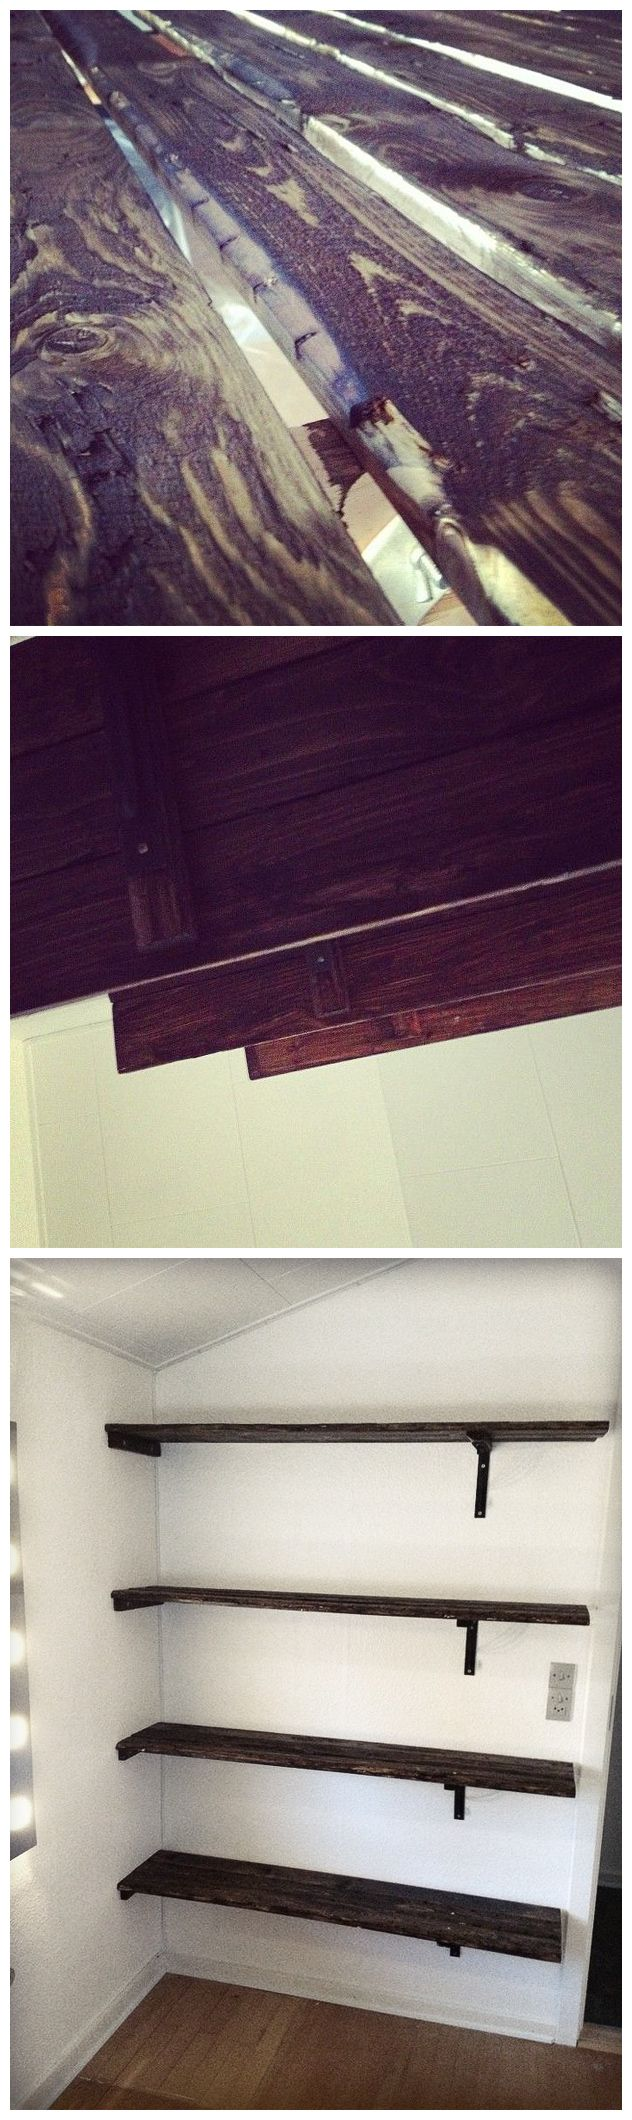 DIY Shelves. The wood is stained to achive a look and feel of old and used wood. The black brackets are bought in Ikea.